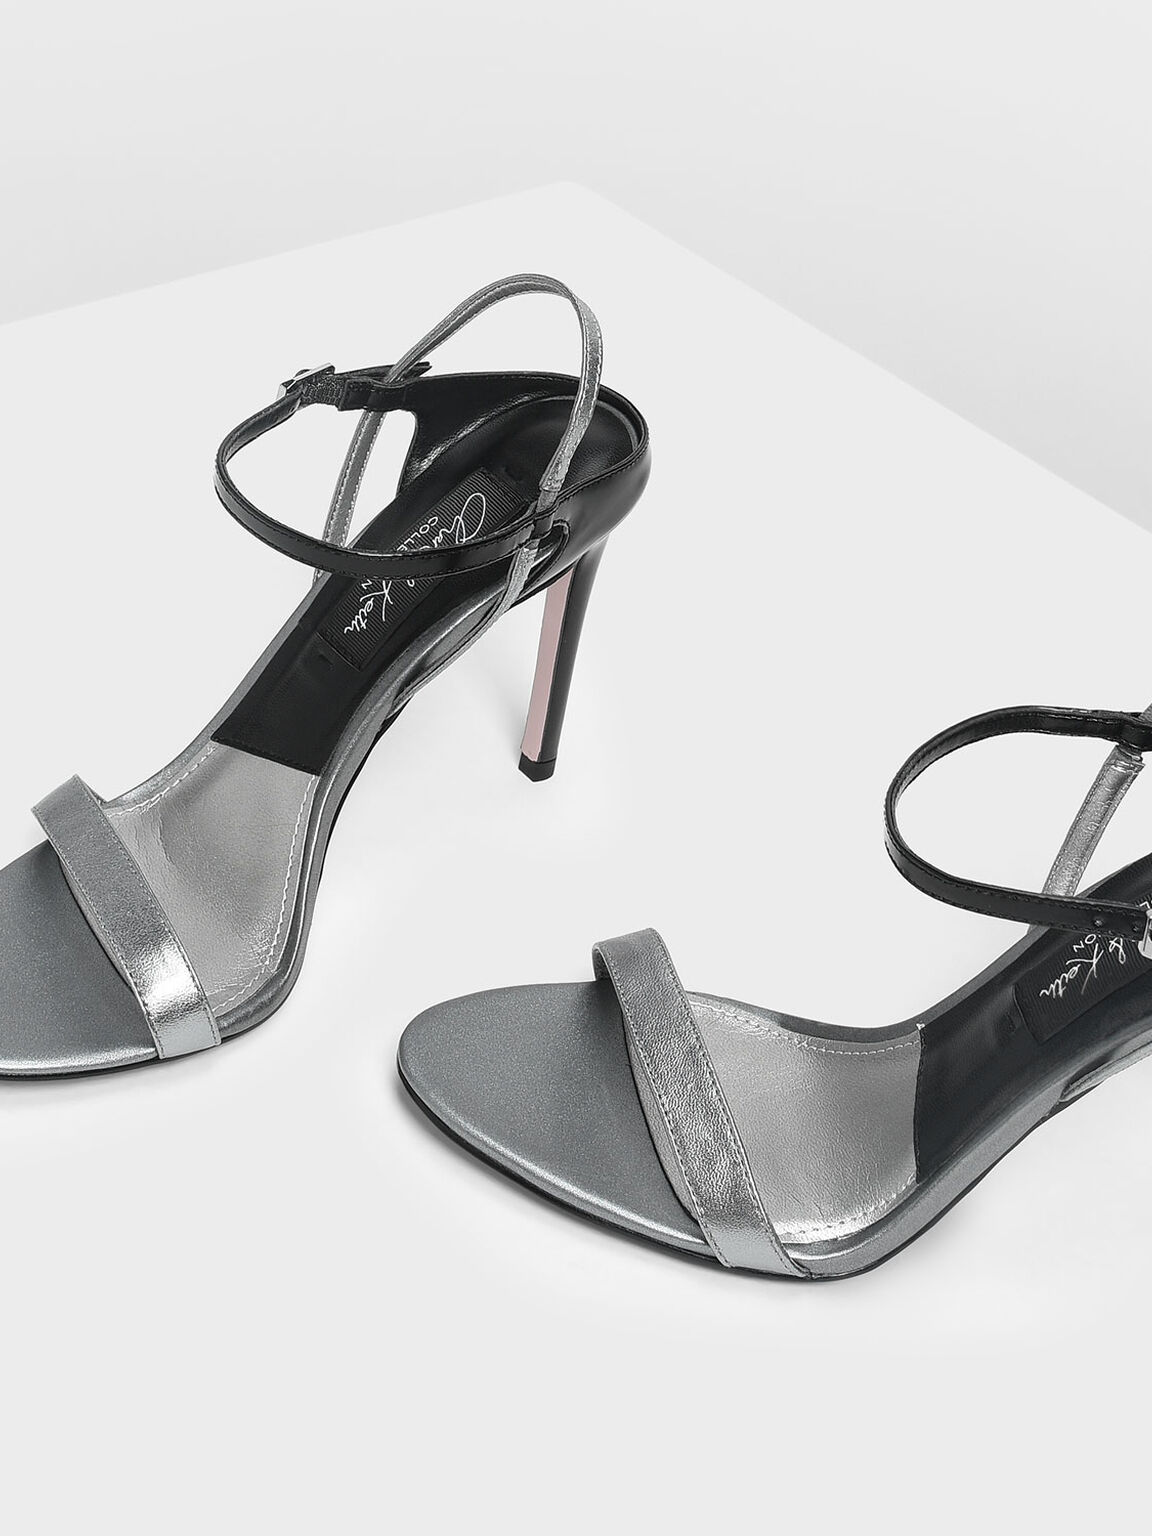 Leather Stiletto Heel Sandals, Pewter, hi-res